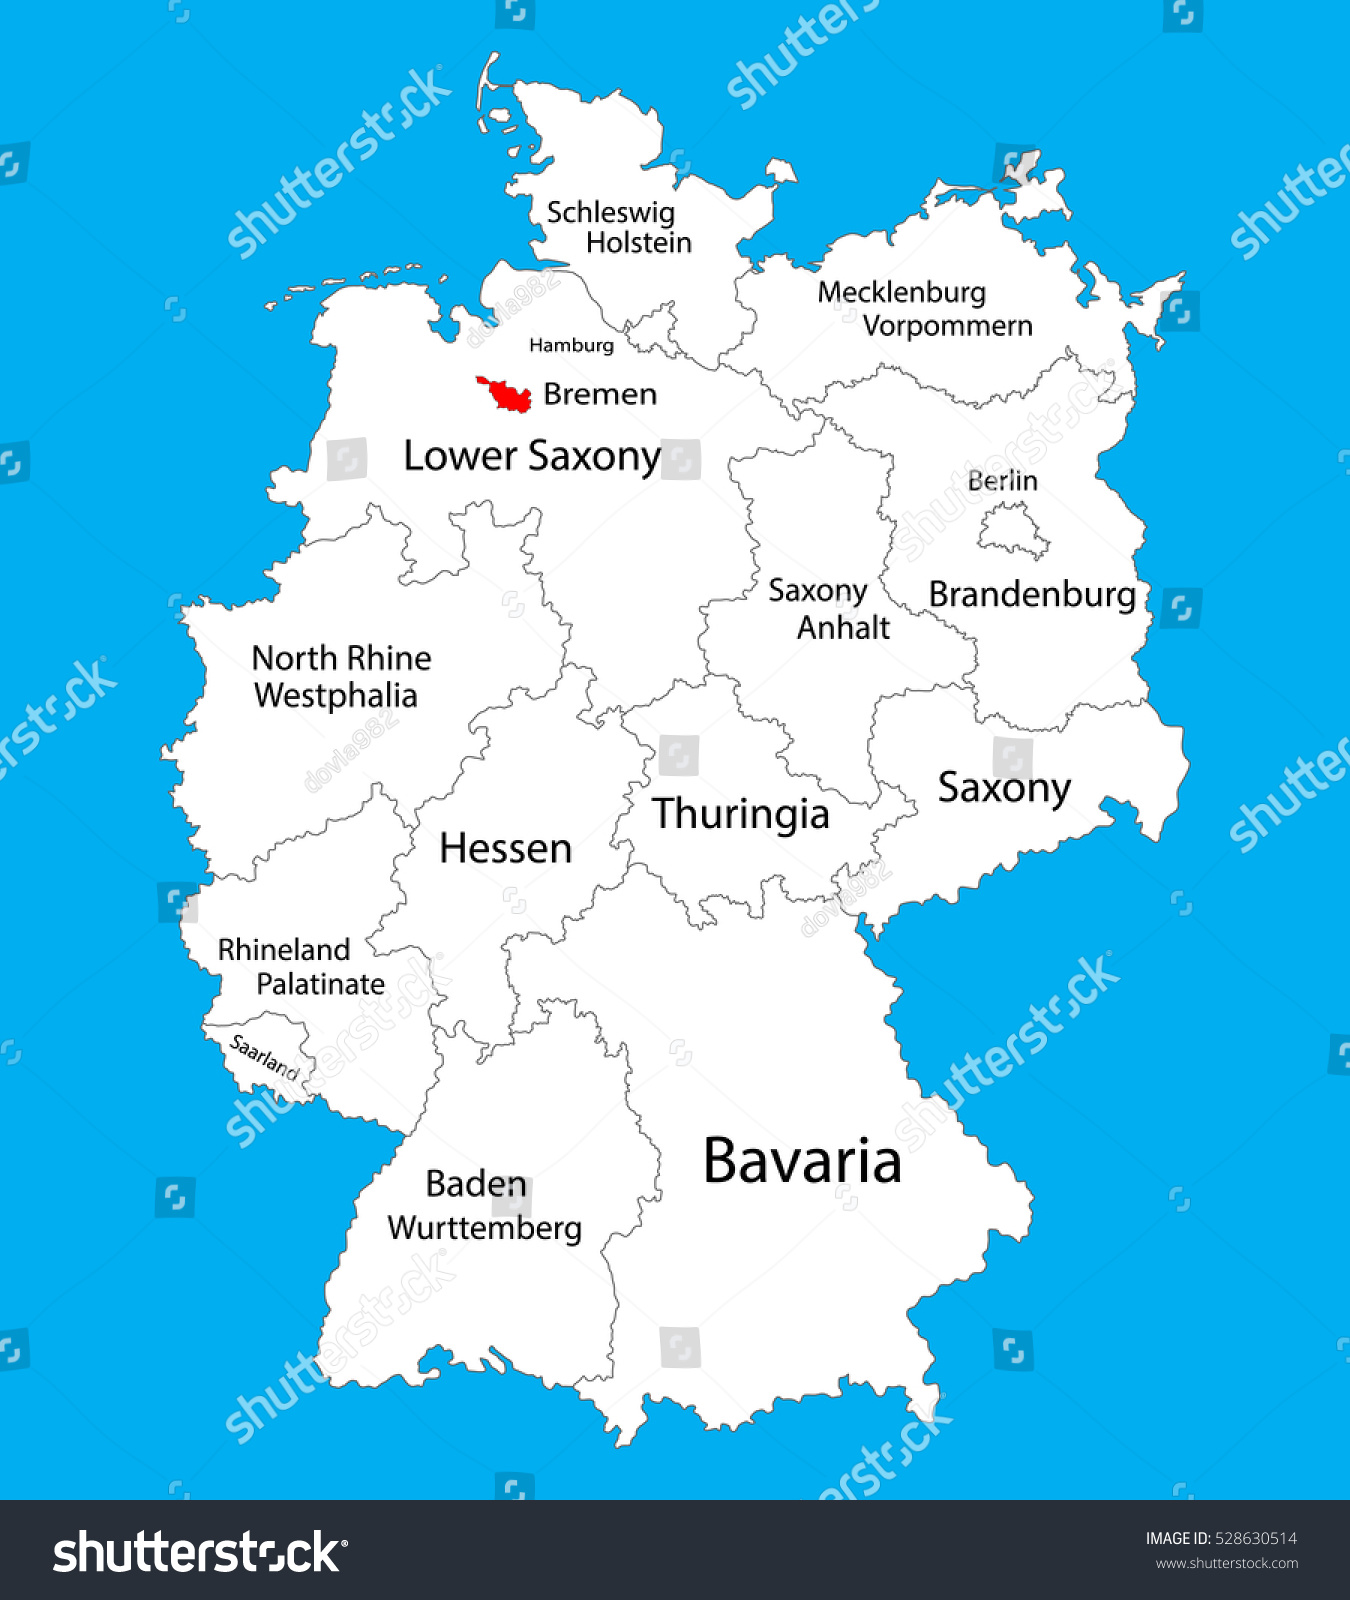 Bremen State Map Germany Vector Map Stock Vector - Germany map bremen